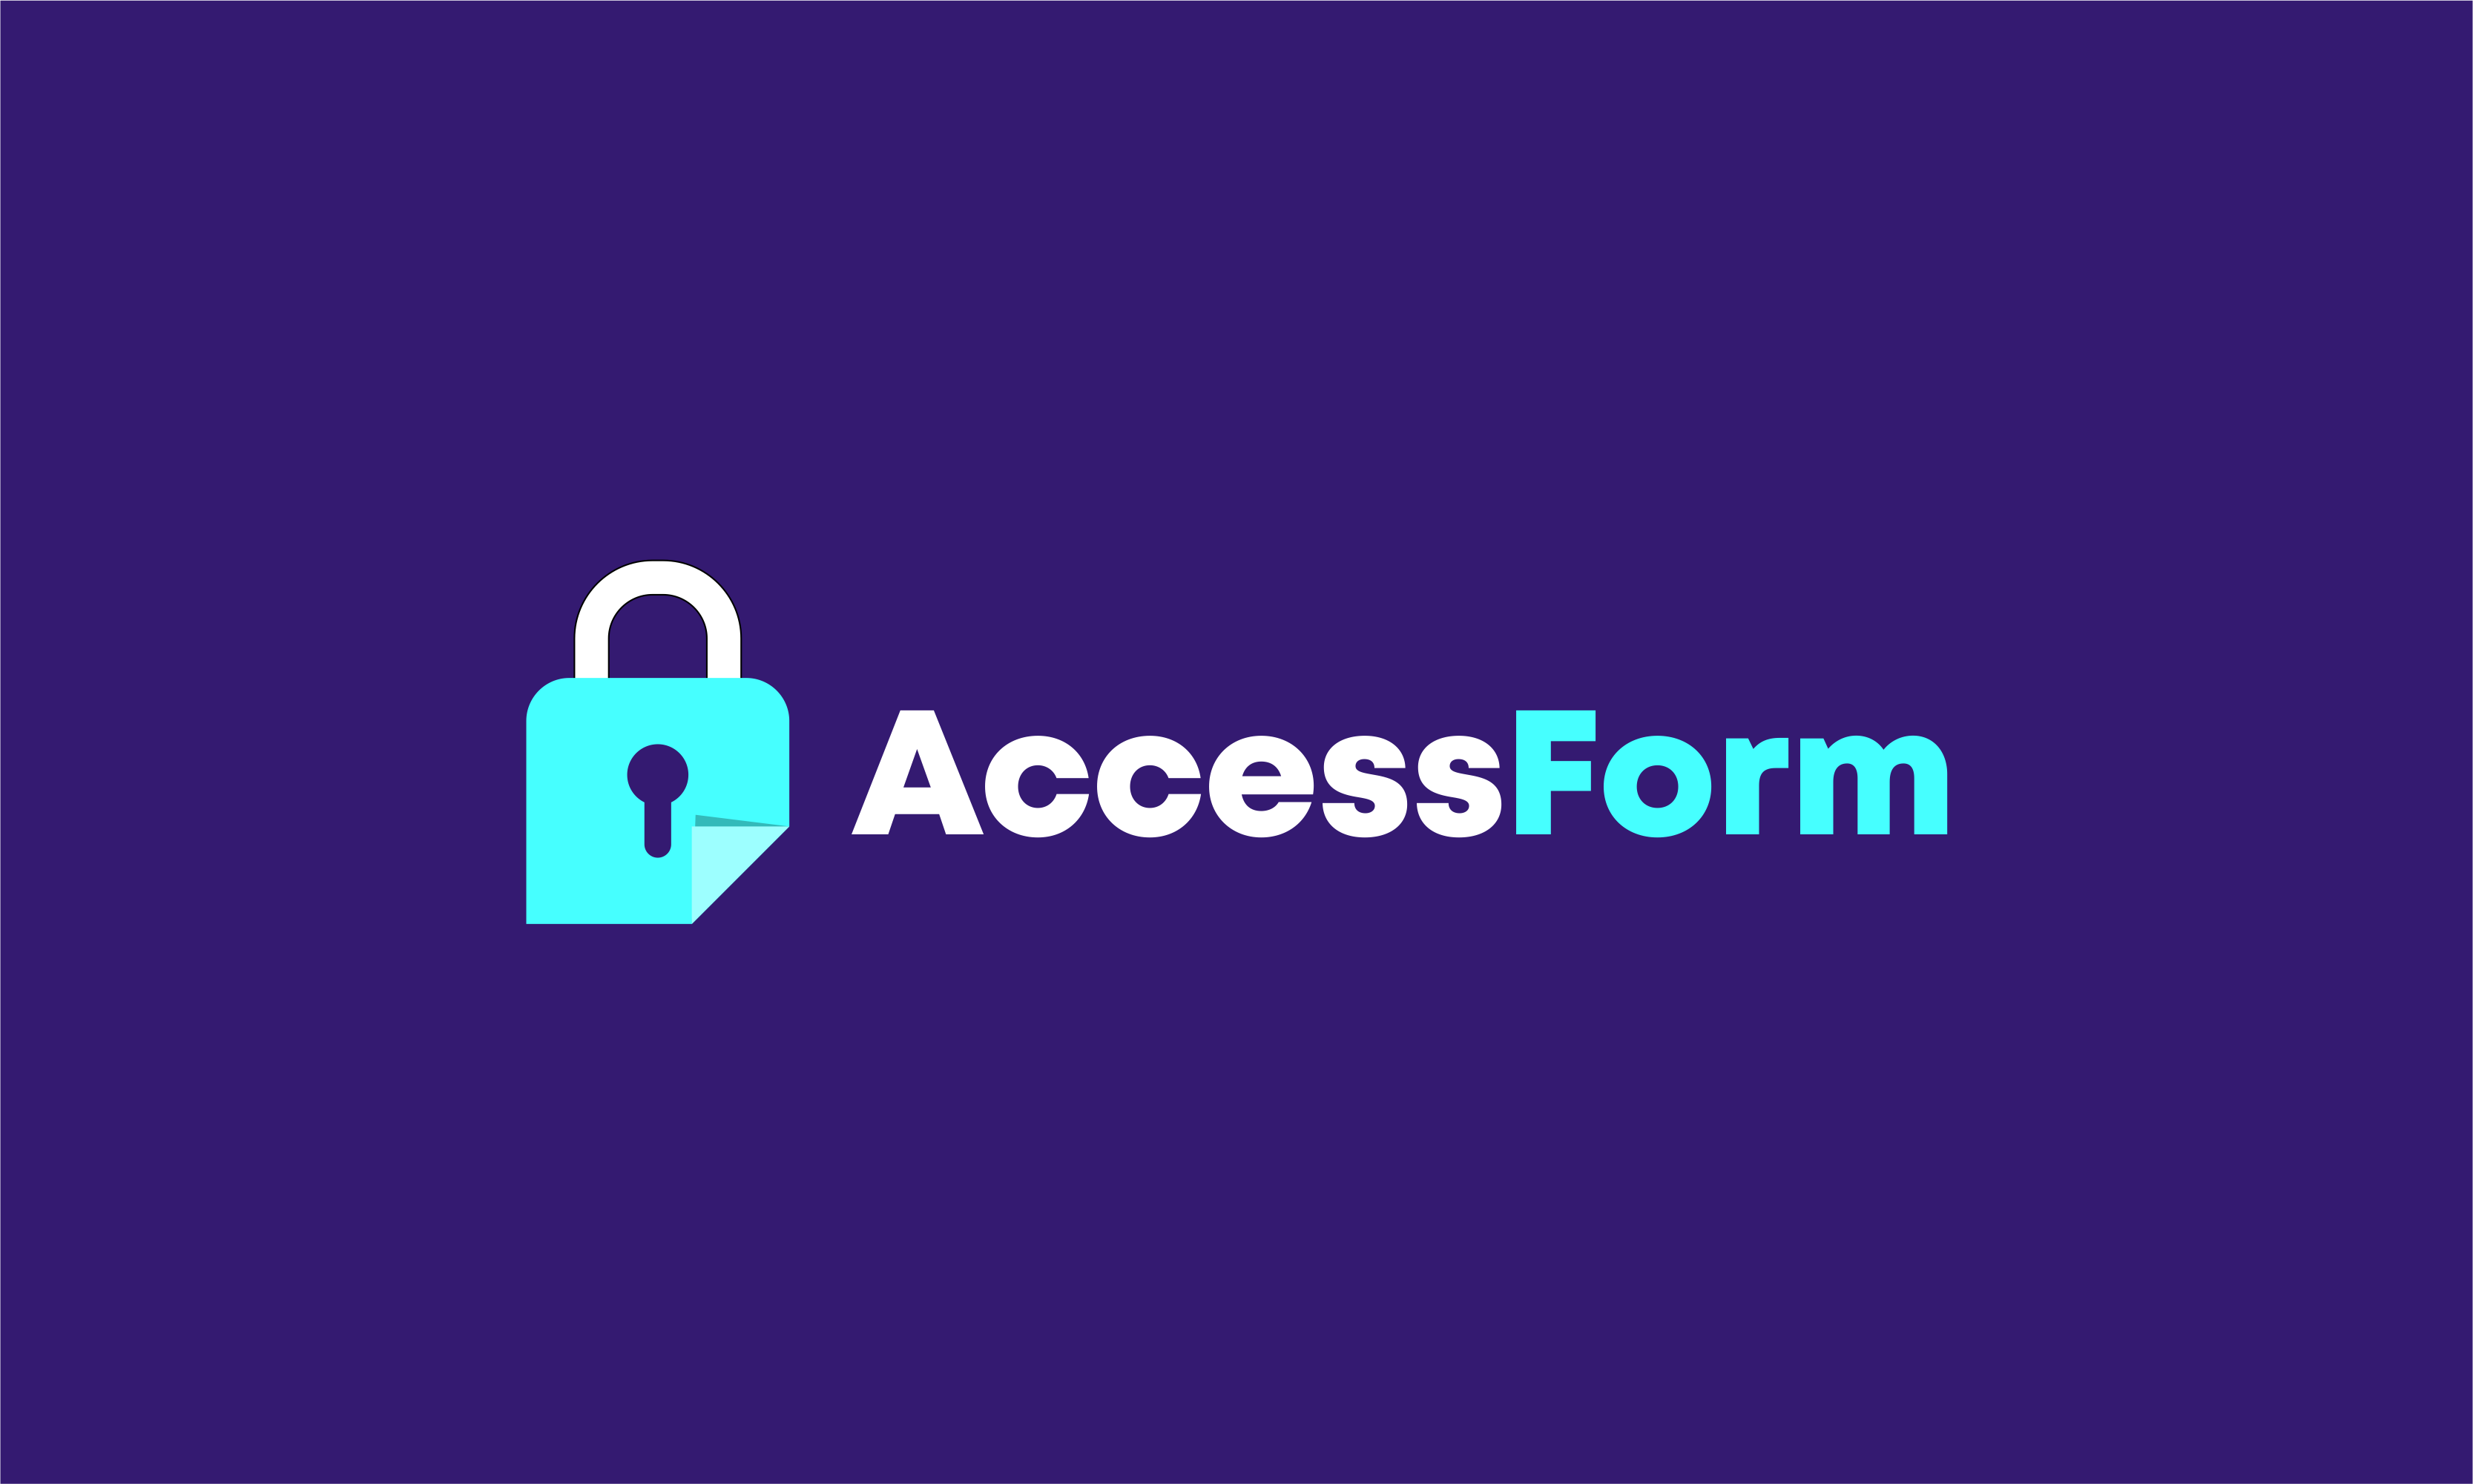 Accessform - Business brand name for sale